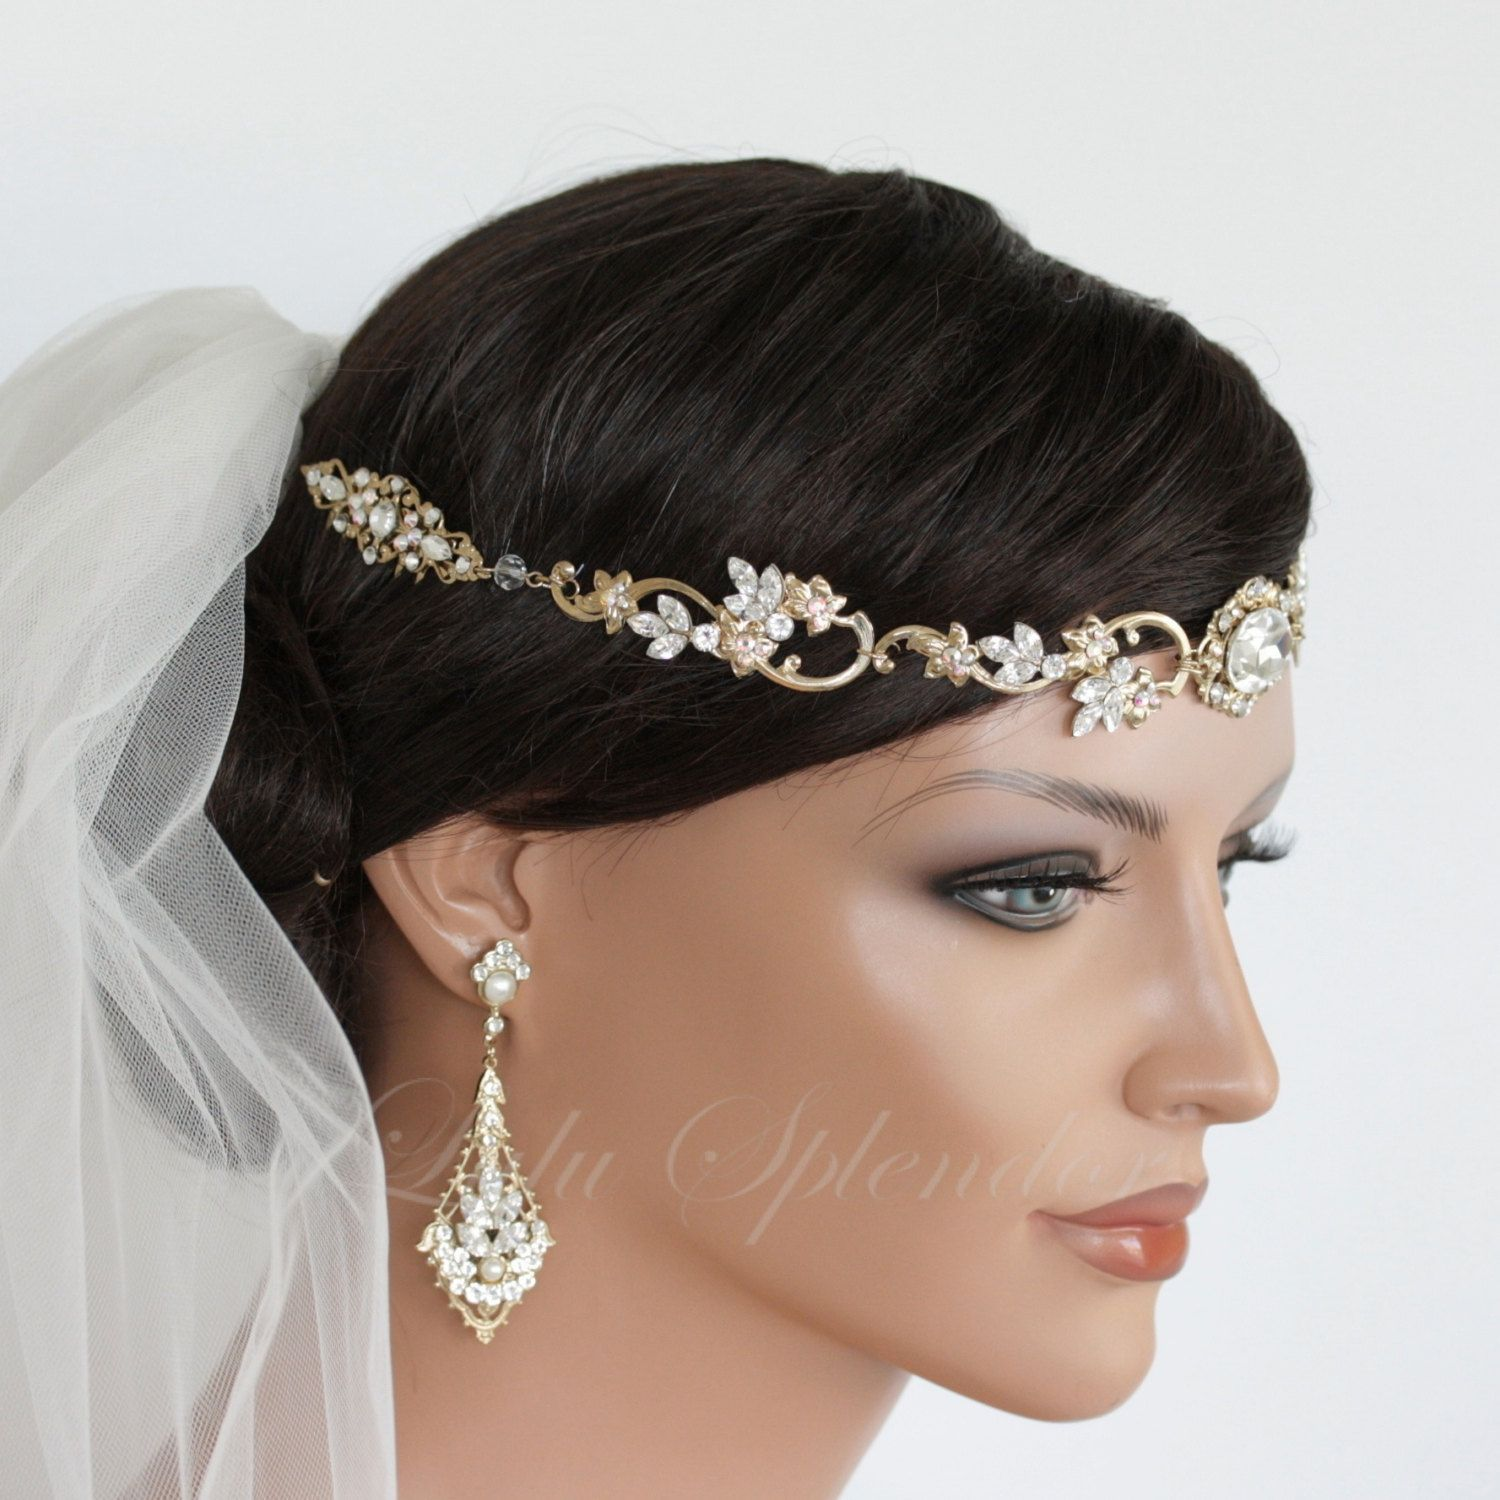 Wedding Hairstyles With Hair Jewelry: Wedding Hair Accessory Gold Forehead Band Vintage Headband